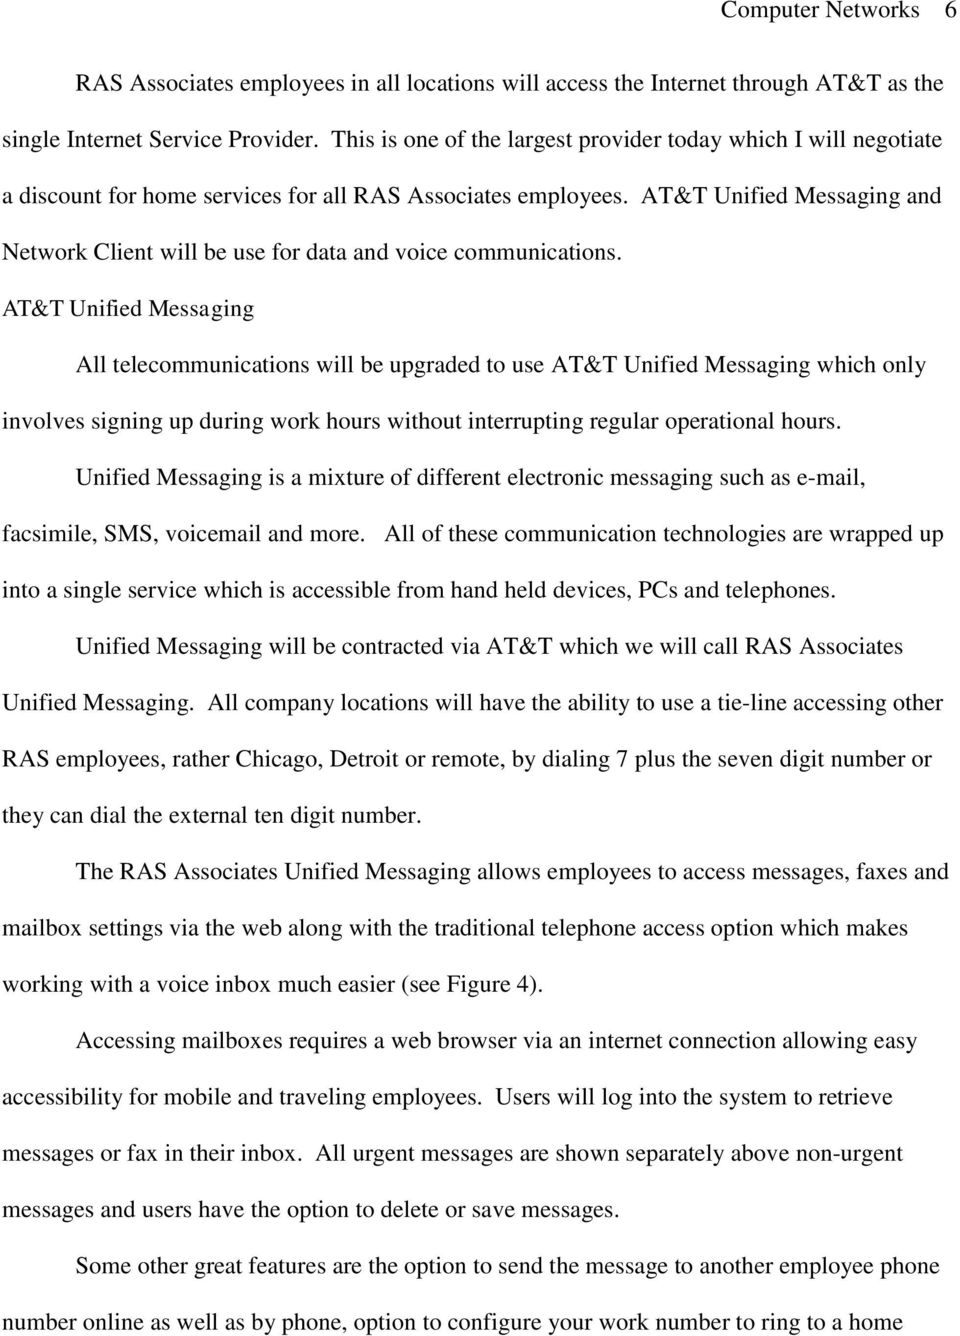 AT&T Unified Messaging and Network Client will be use for data and voice communications.